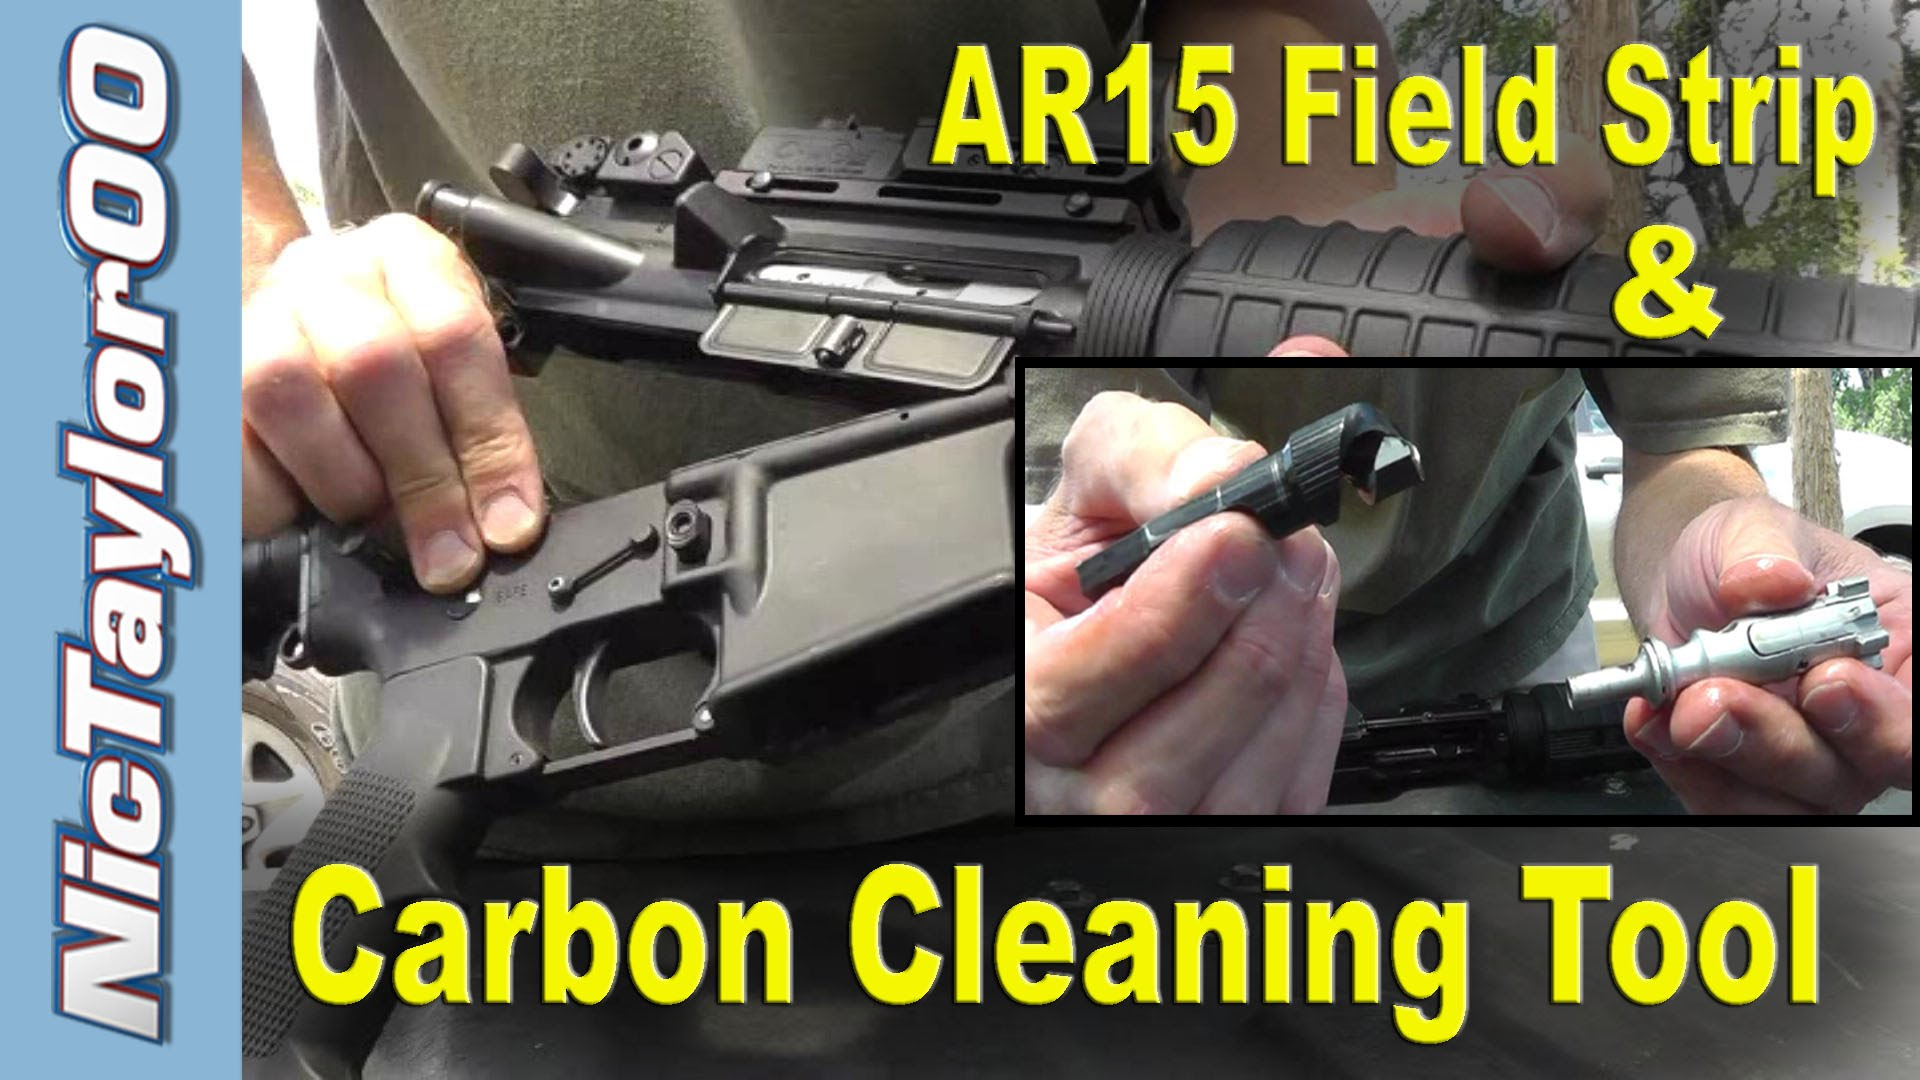 AR-15 Field Strip & DI Carbon Cleaning Tool for the Bolt